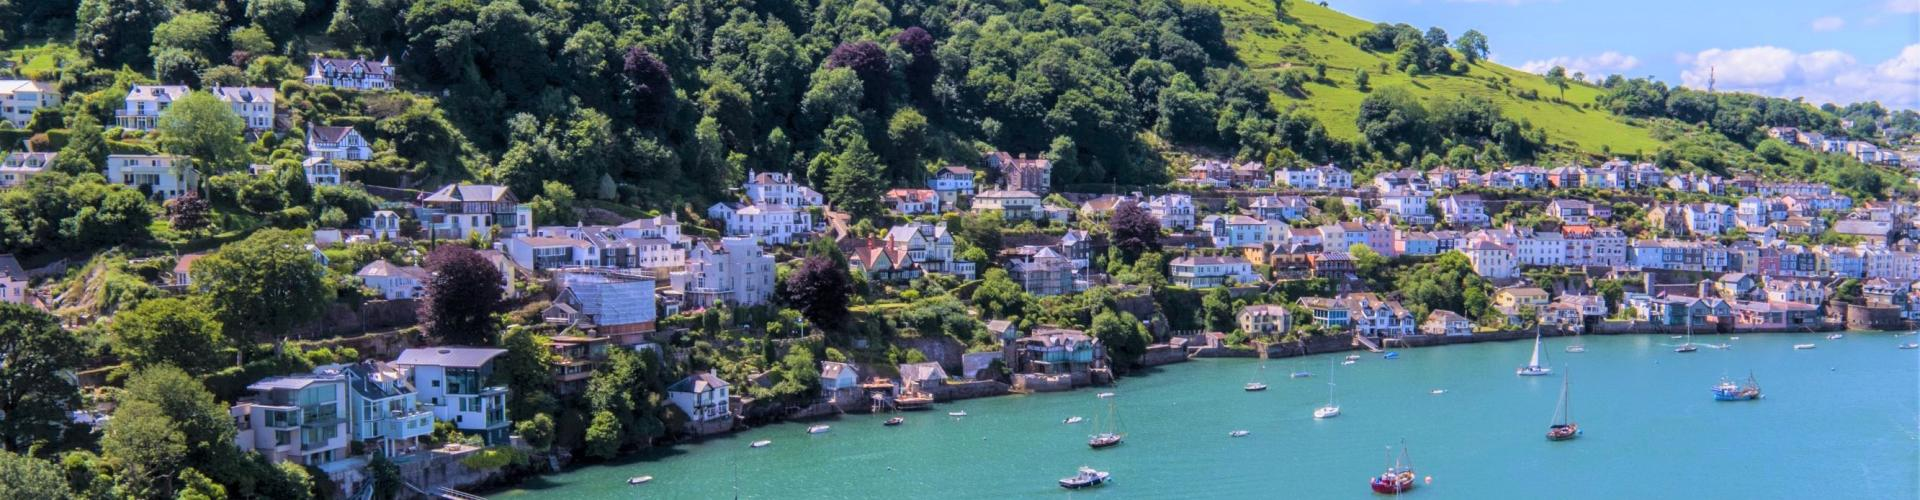 Aerial view of coastal town on estuary with moored boats in South Devon small 3